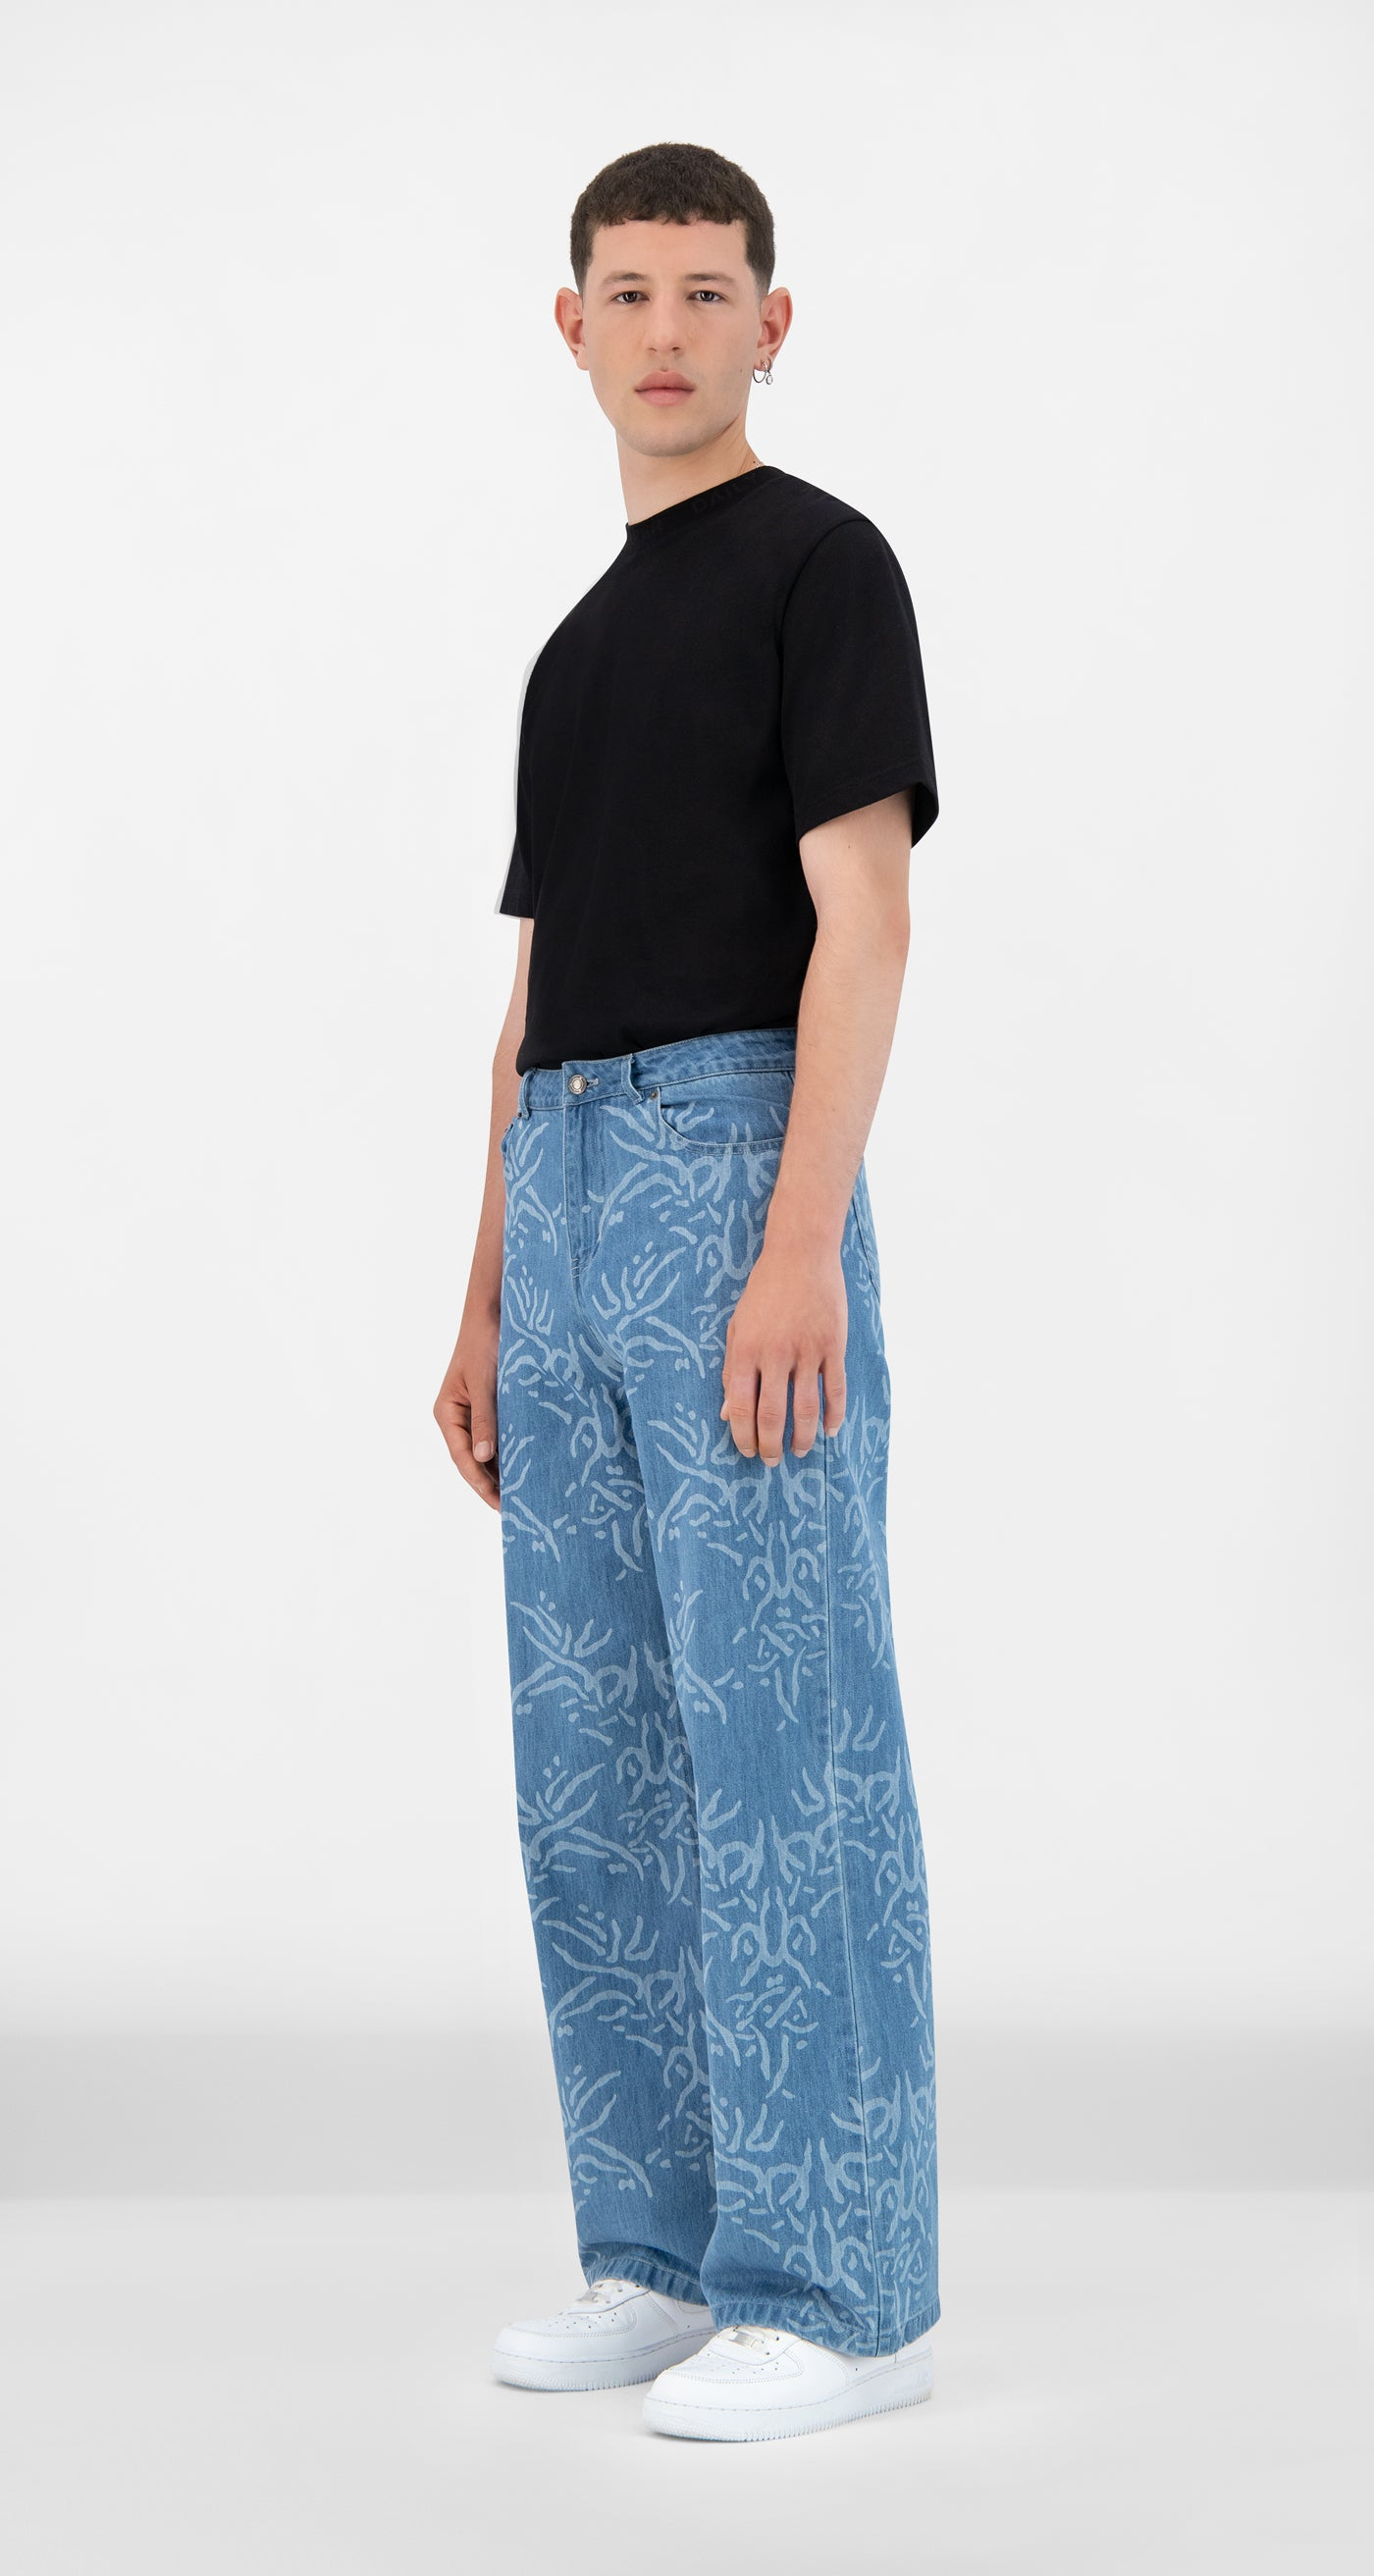 Daily Paper - Light Lazered Denim Jangel Pants - Men